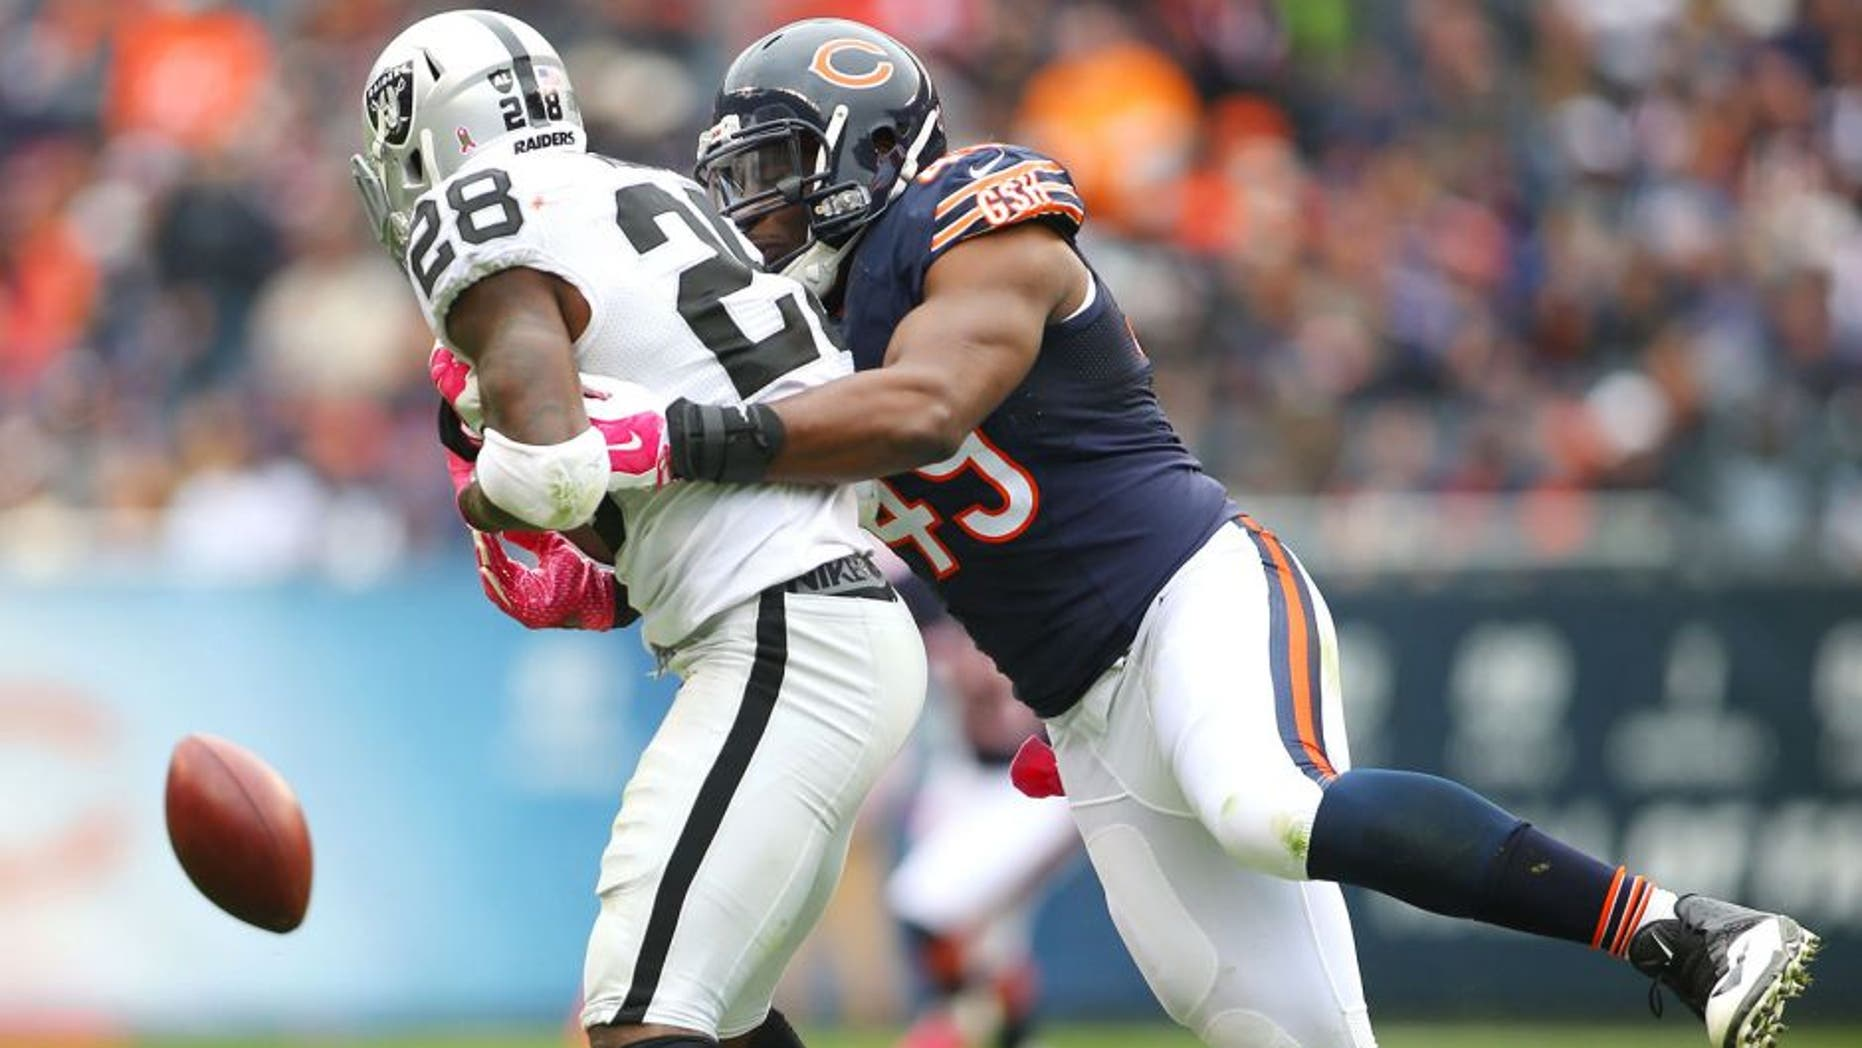 Oct 4, 2015; Chicago, IL, USA; Chicago Bears defensive end Sam Acho (49) breaks up a pass intended for Oakland Raiders running back Latavius Murray (28) during the second half at Soldier Field. Mandatory Credit: Jerry Lai-USA TODAY Sports